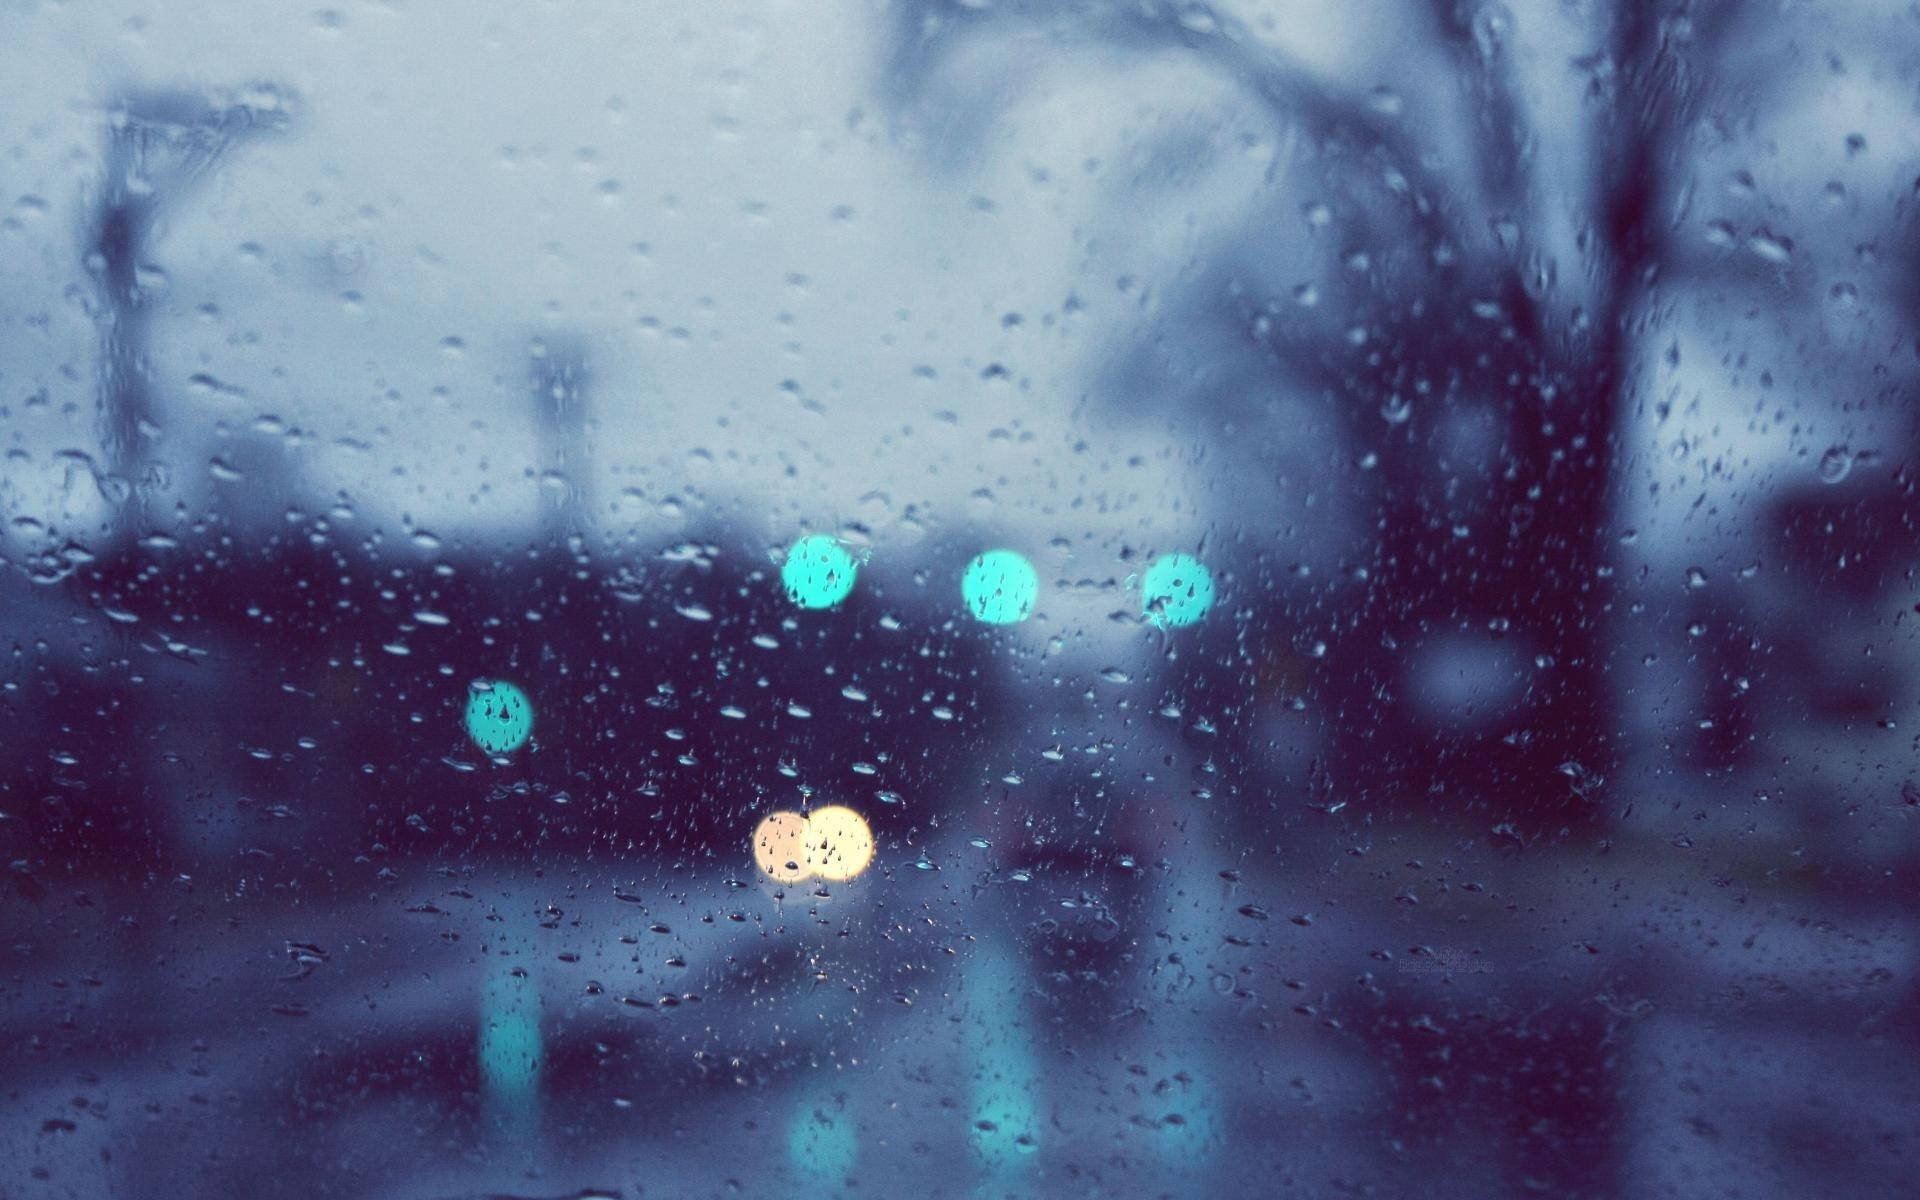 19558 download wallpaper Background, Rain, Drops screensavers and pictures for free